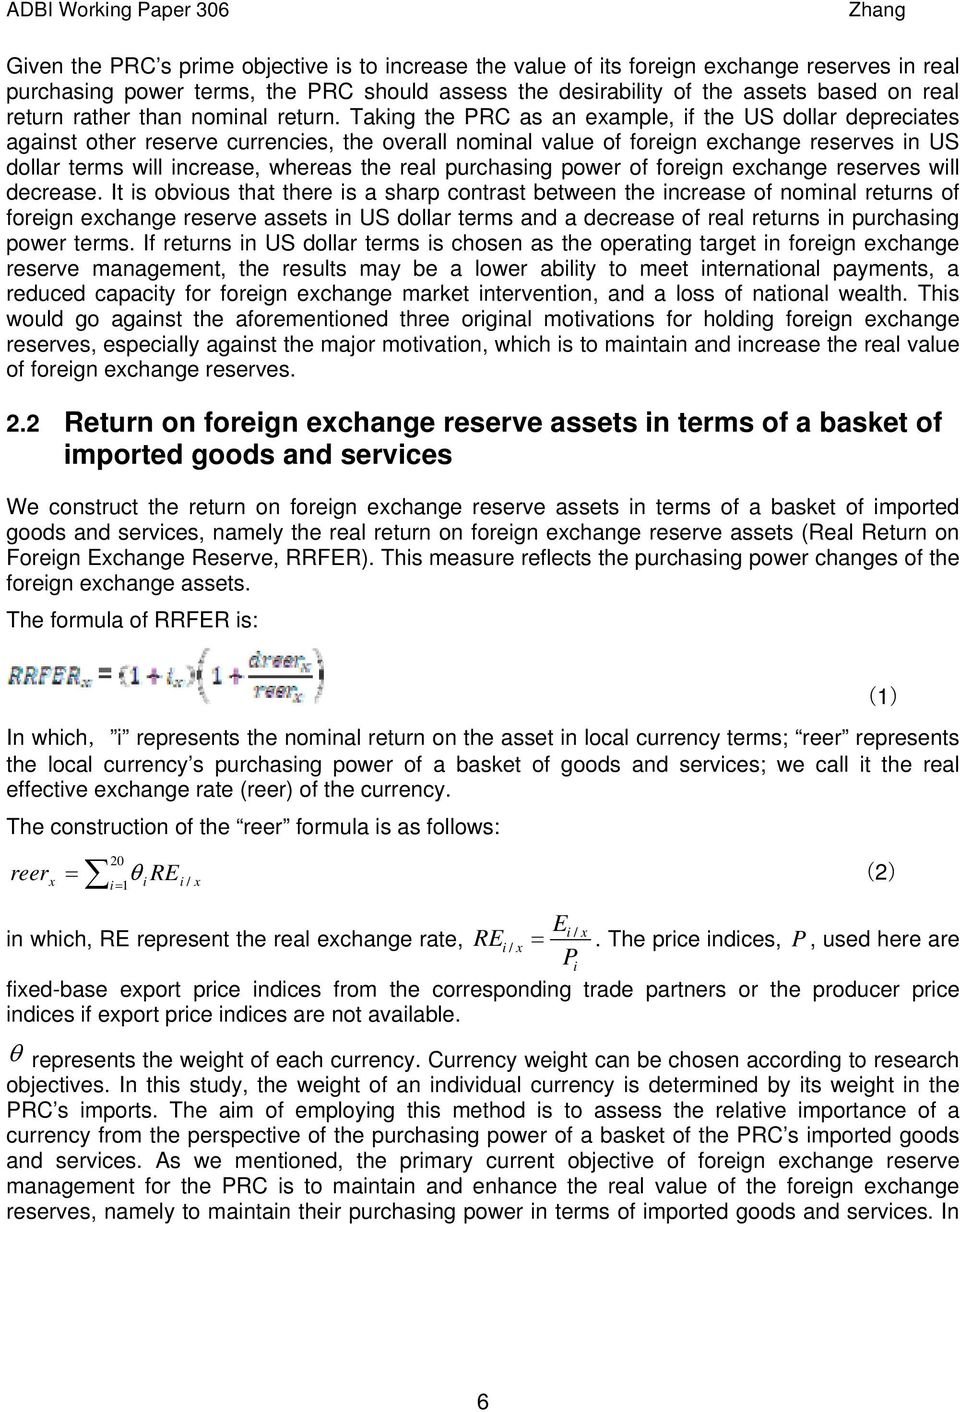 Taking the PRC as an example, if the US dollar depreciates against other reserve currencies, the overall nominal value of foreign exchange reserves in US dollar terms will increase, whereas the real